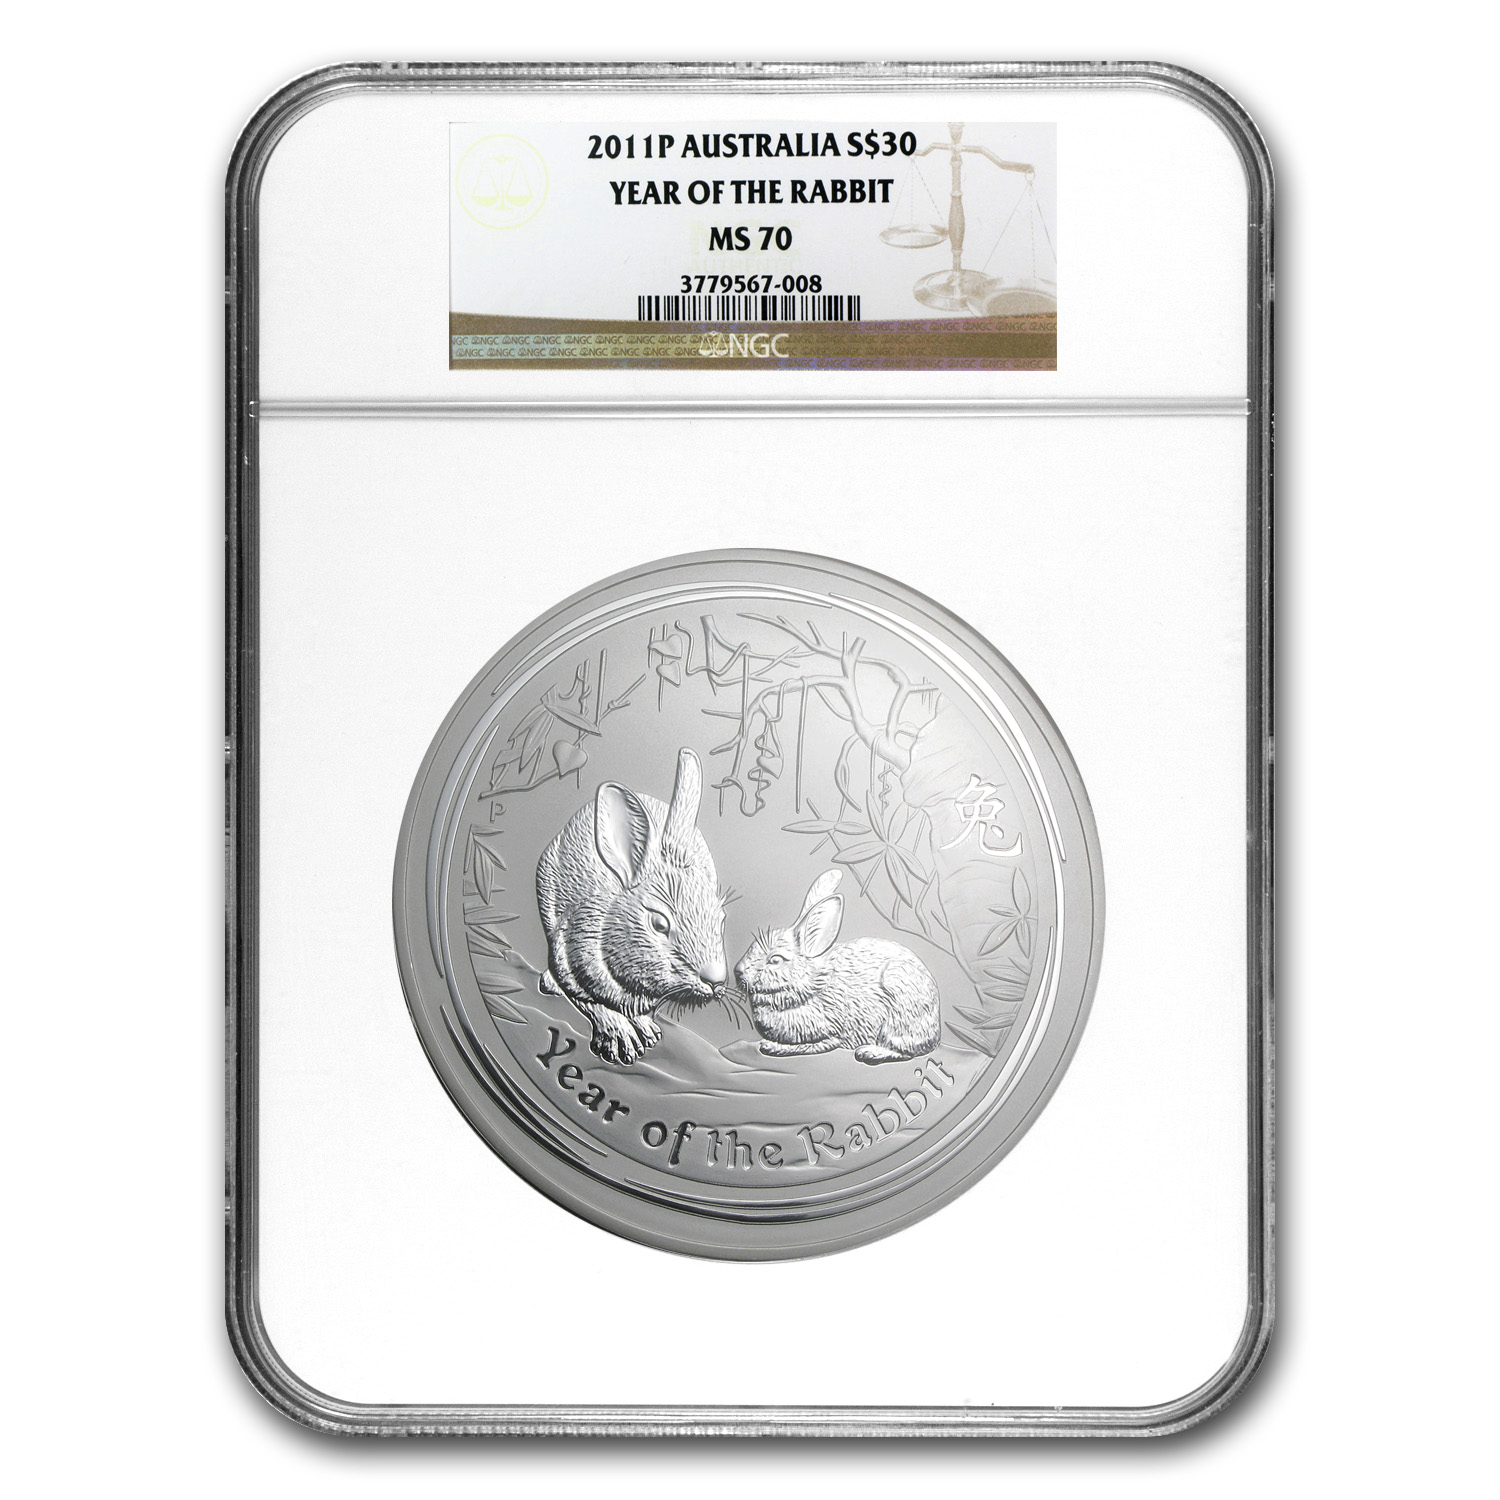 2011 1 Kilo Silver Australian Year of the Rabbit MS-70 NGC